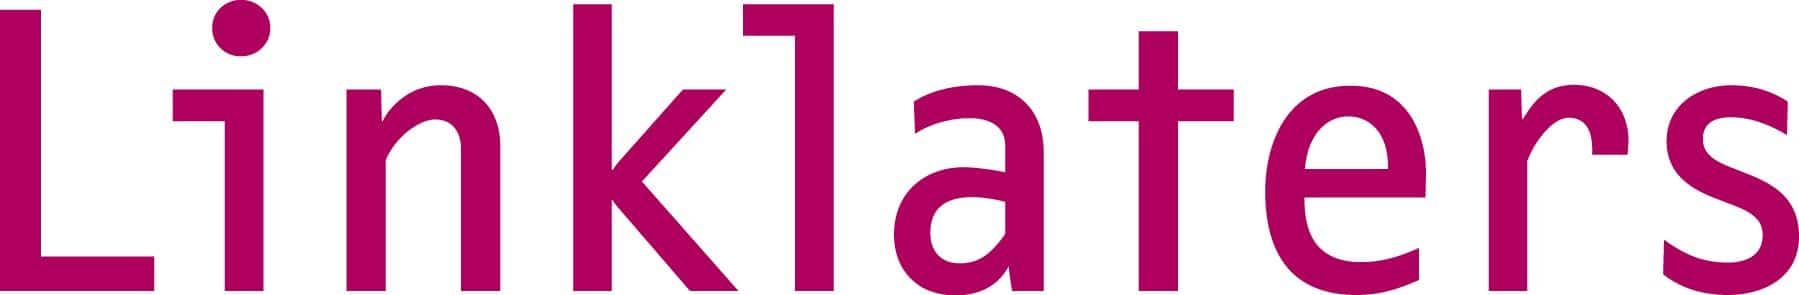 Logo for Linklaters LLP law firm shows the word Linklaters in pink color